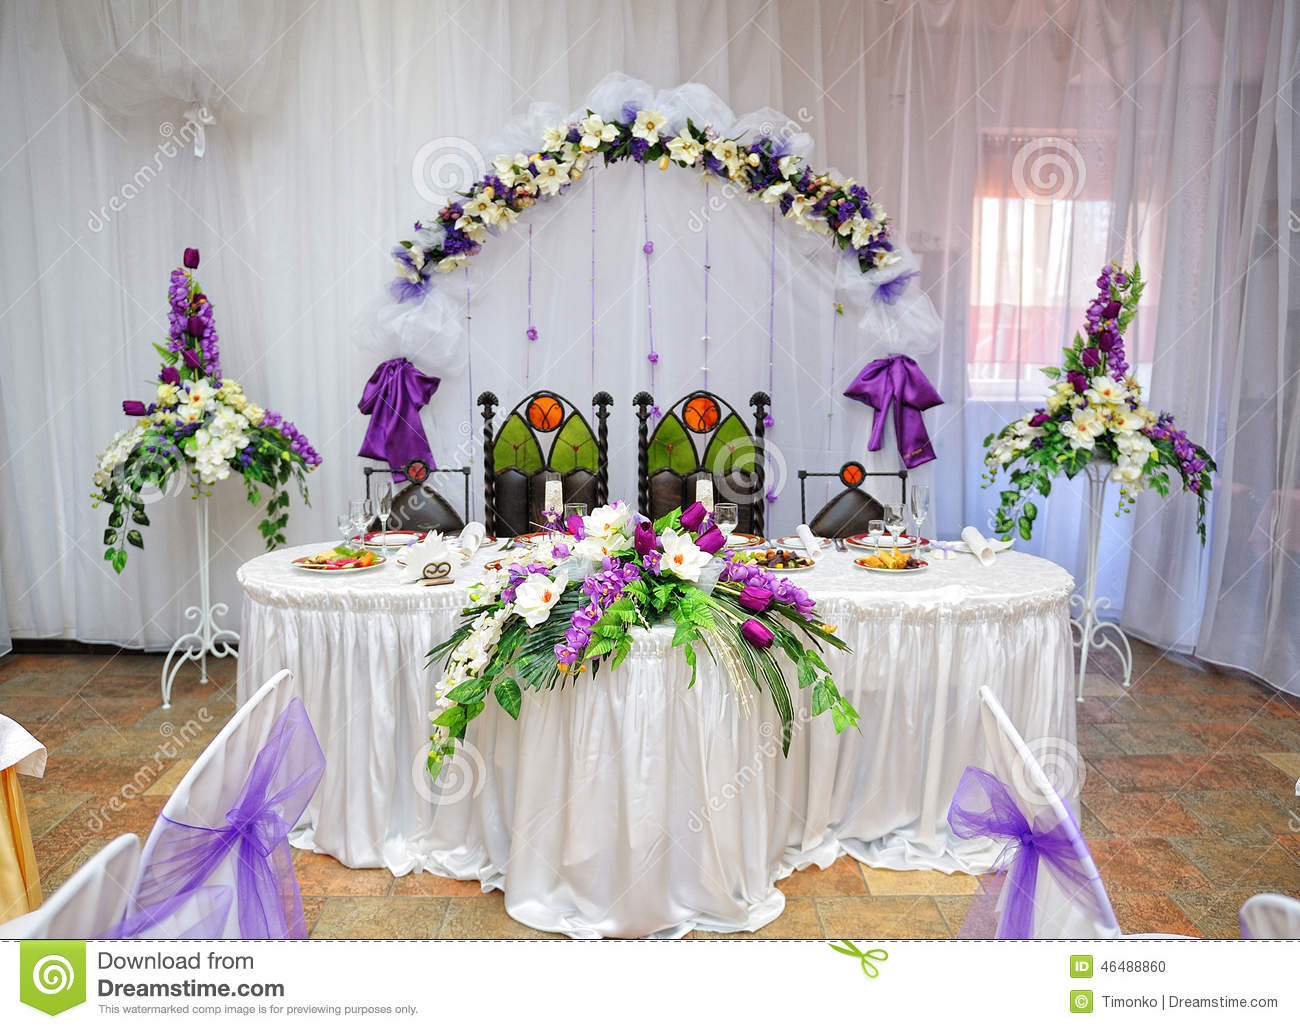 Wedding Centerpiece For Bride And Groom Table : Online Store Deals